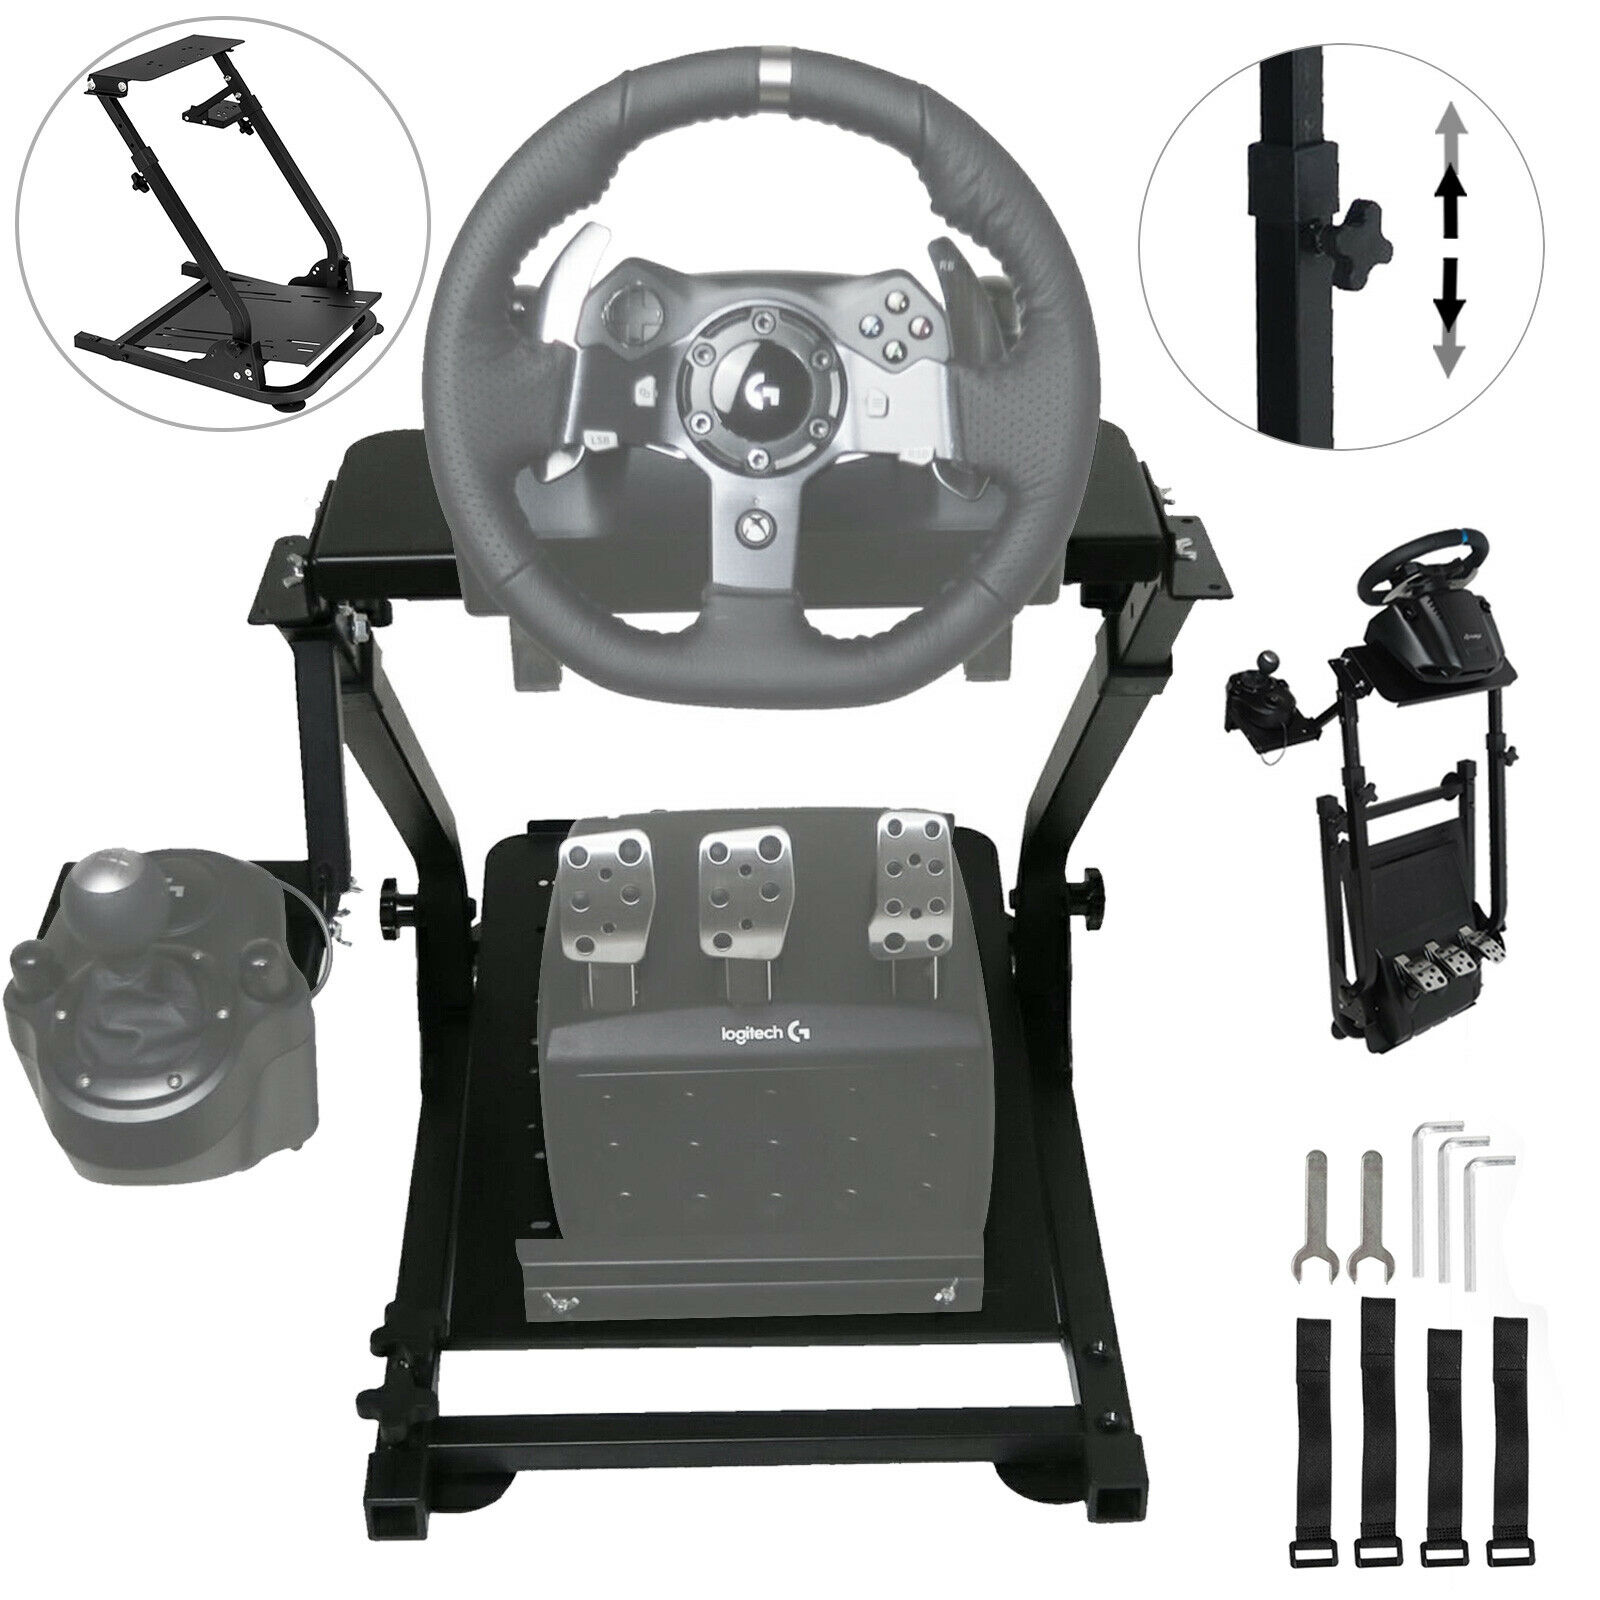 Free Shipping For Self-Career Race Steering Wheel Support For Logitech G25 G27 G29 And G920 Folding Steering Wheel Stand